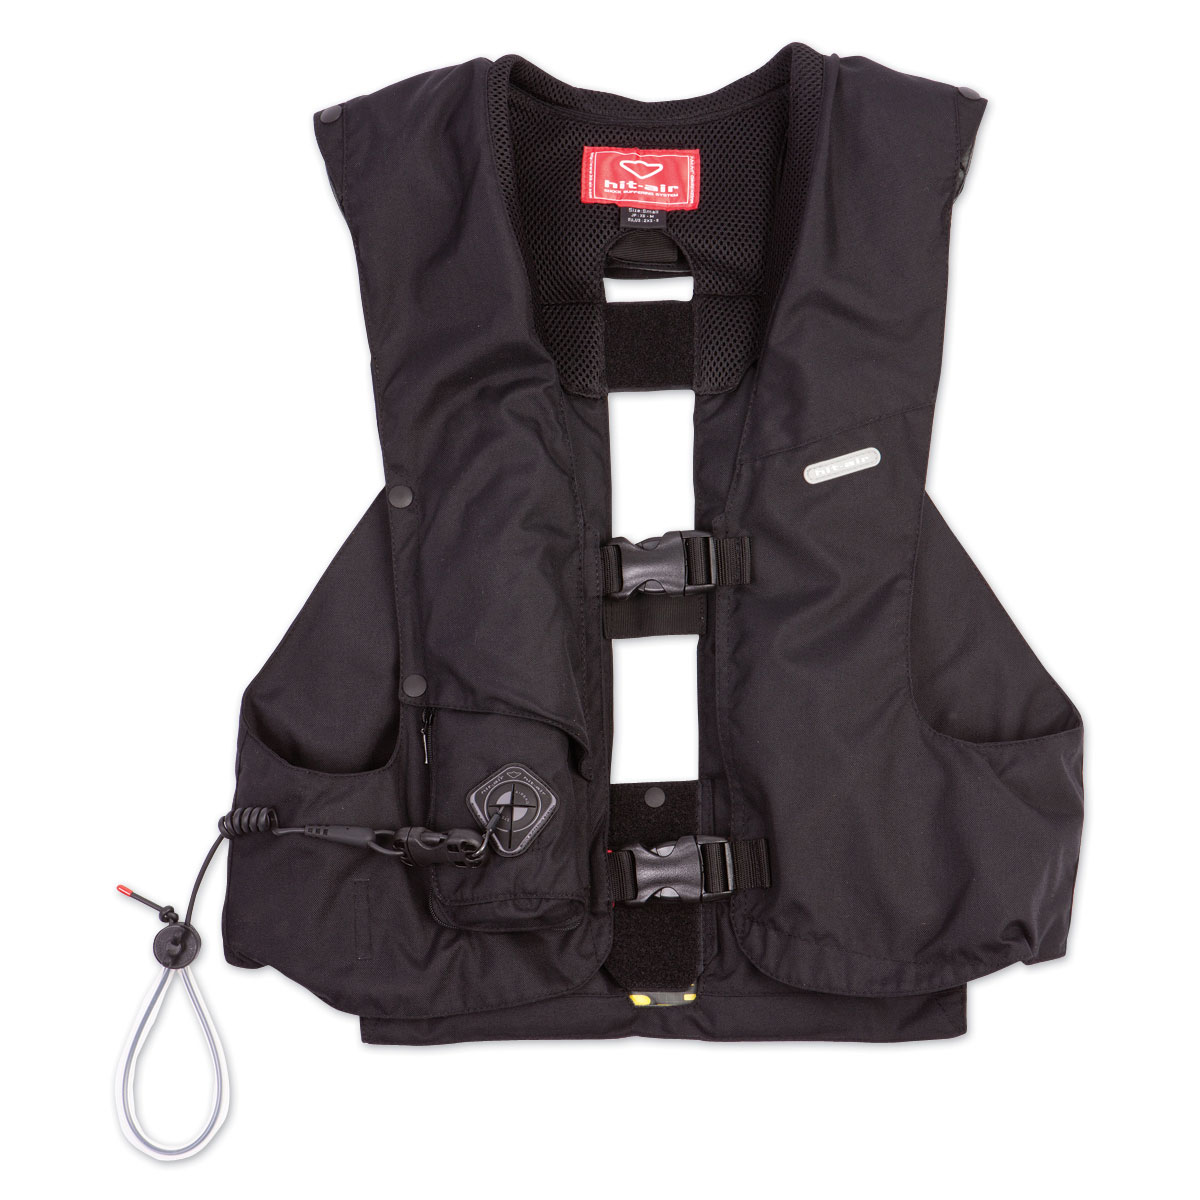 Hit Air Equestrian Super Light Weight Vest